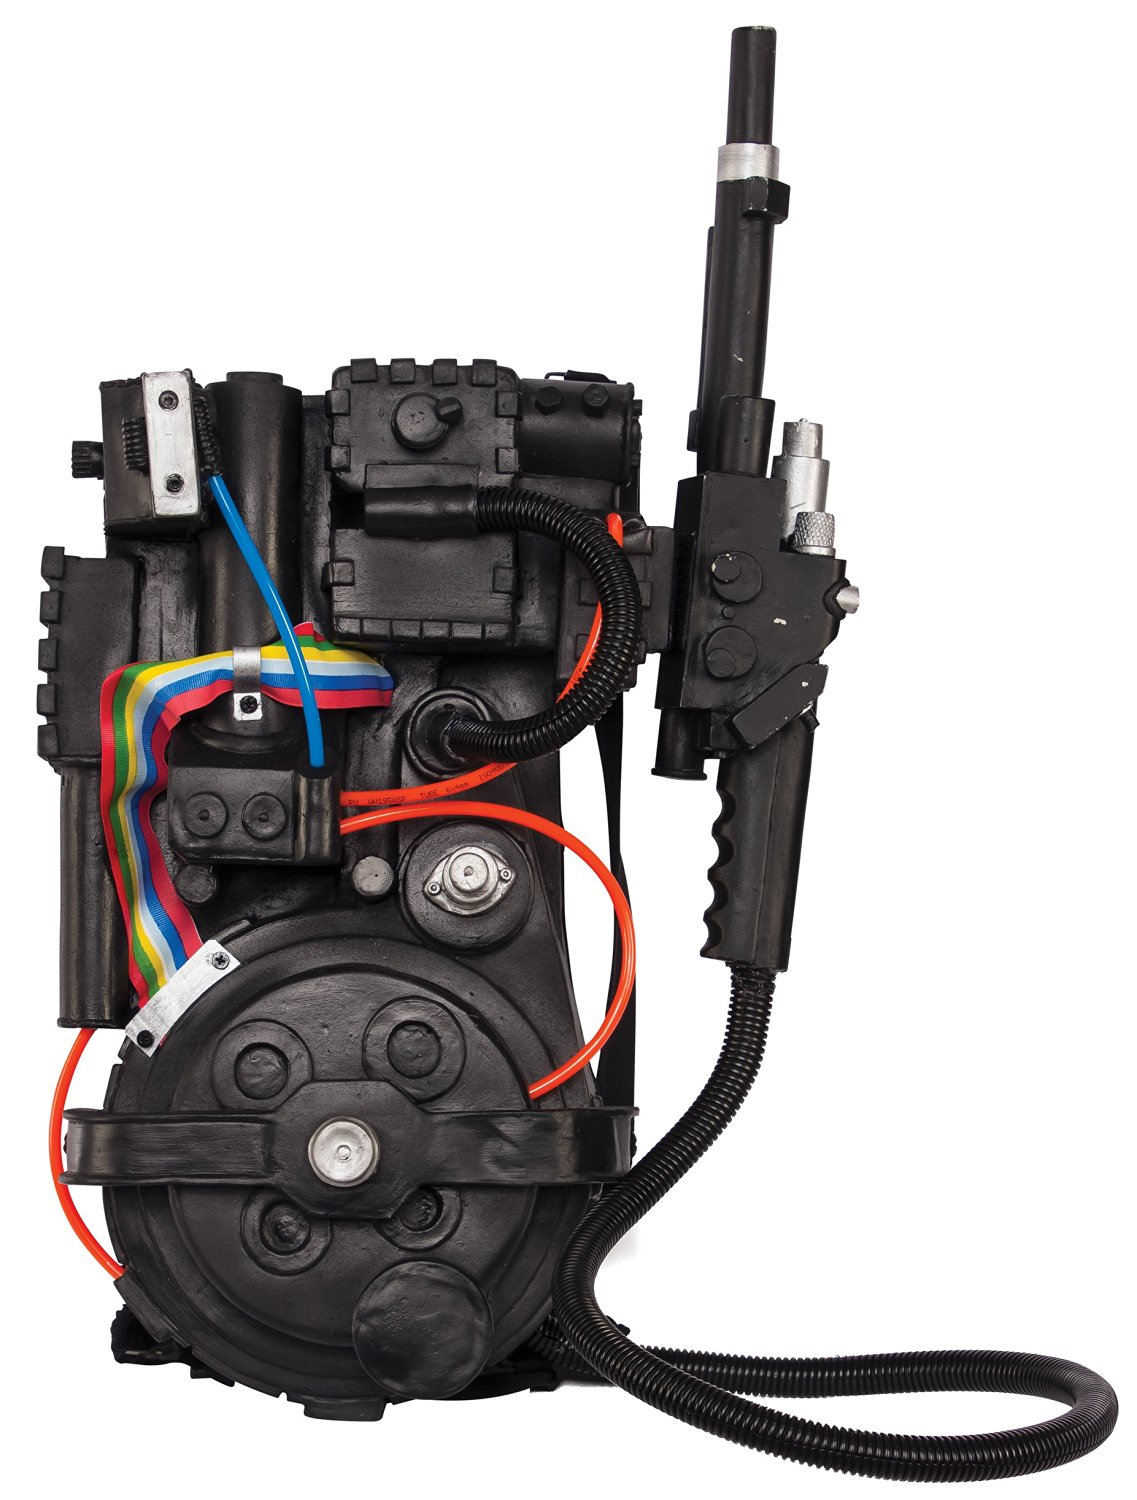 Deluxe Ghostbusters Proton Pack for kids now on Amazon